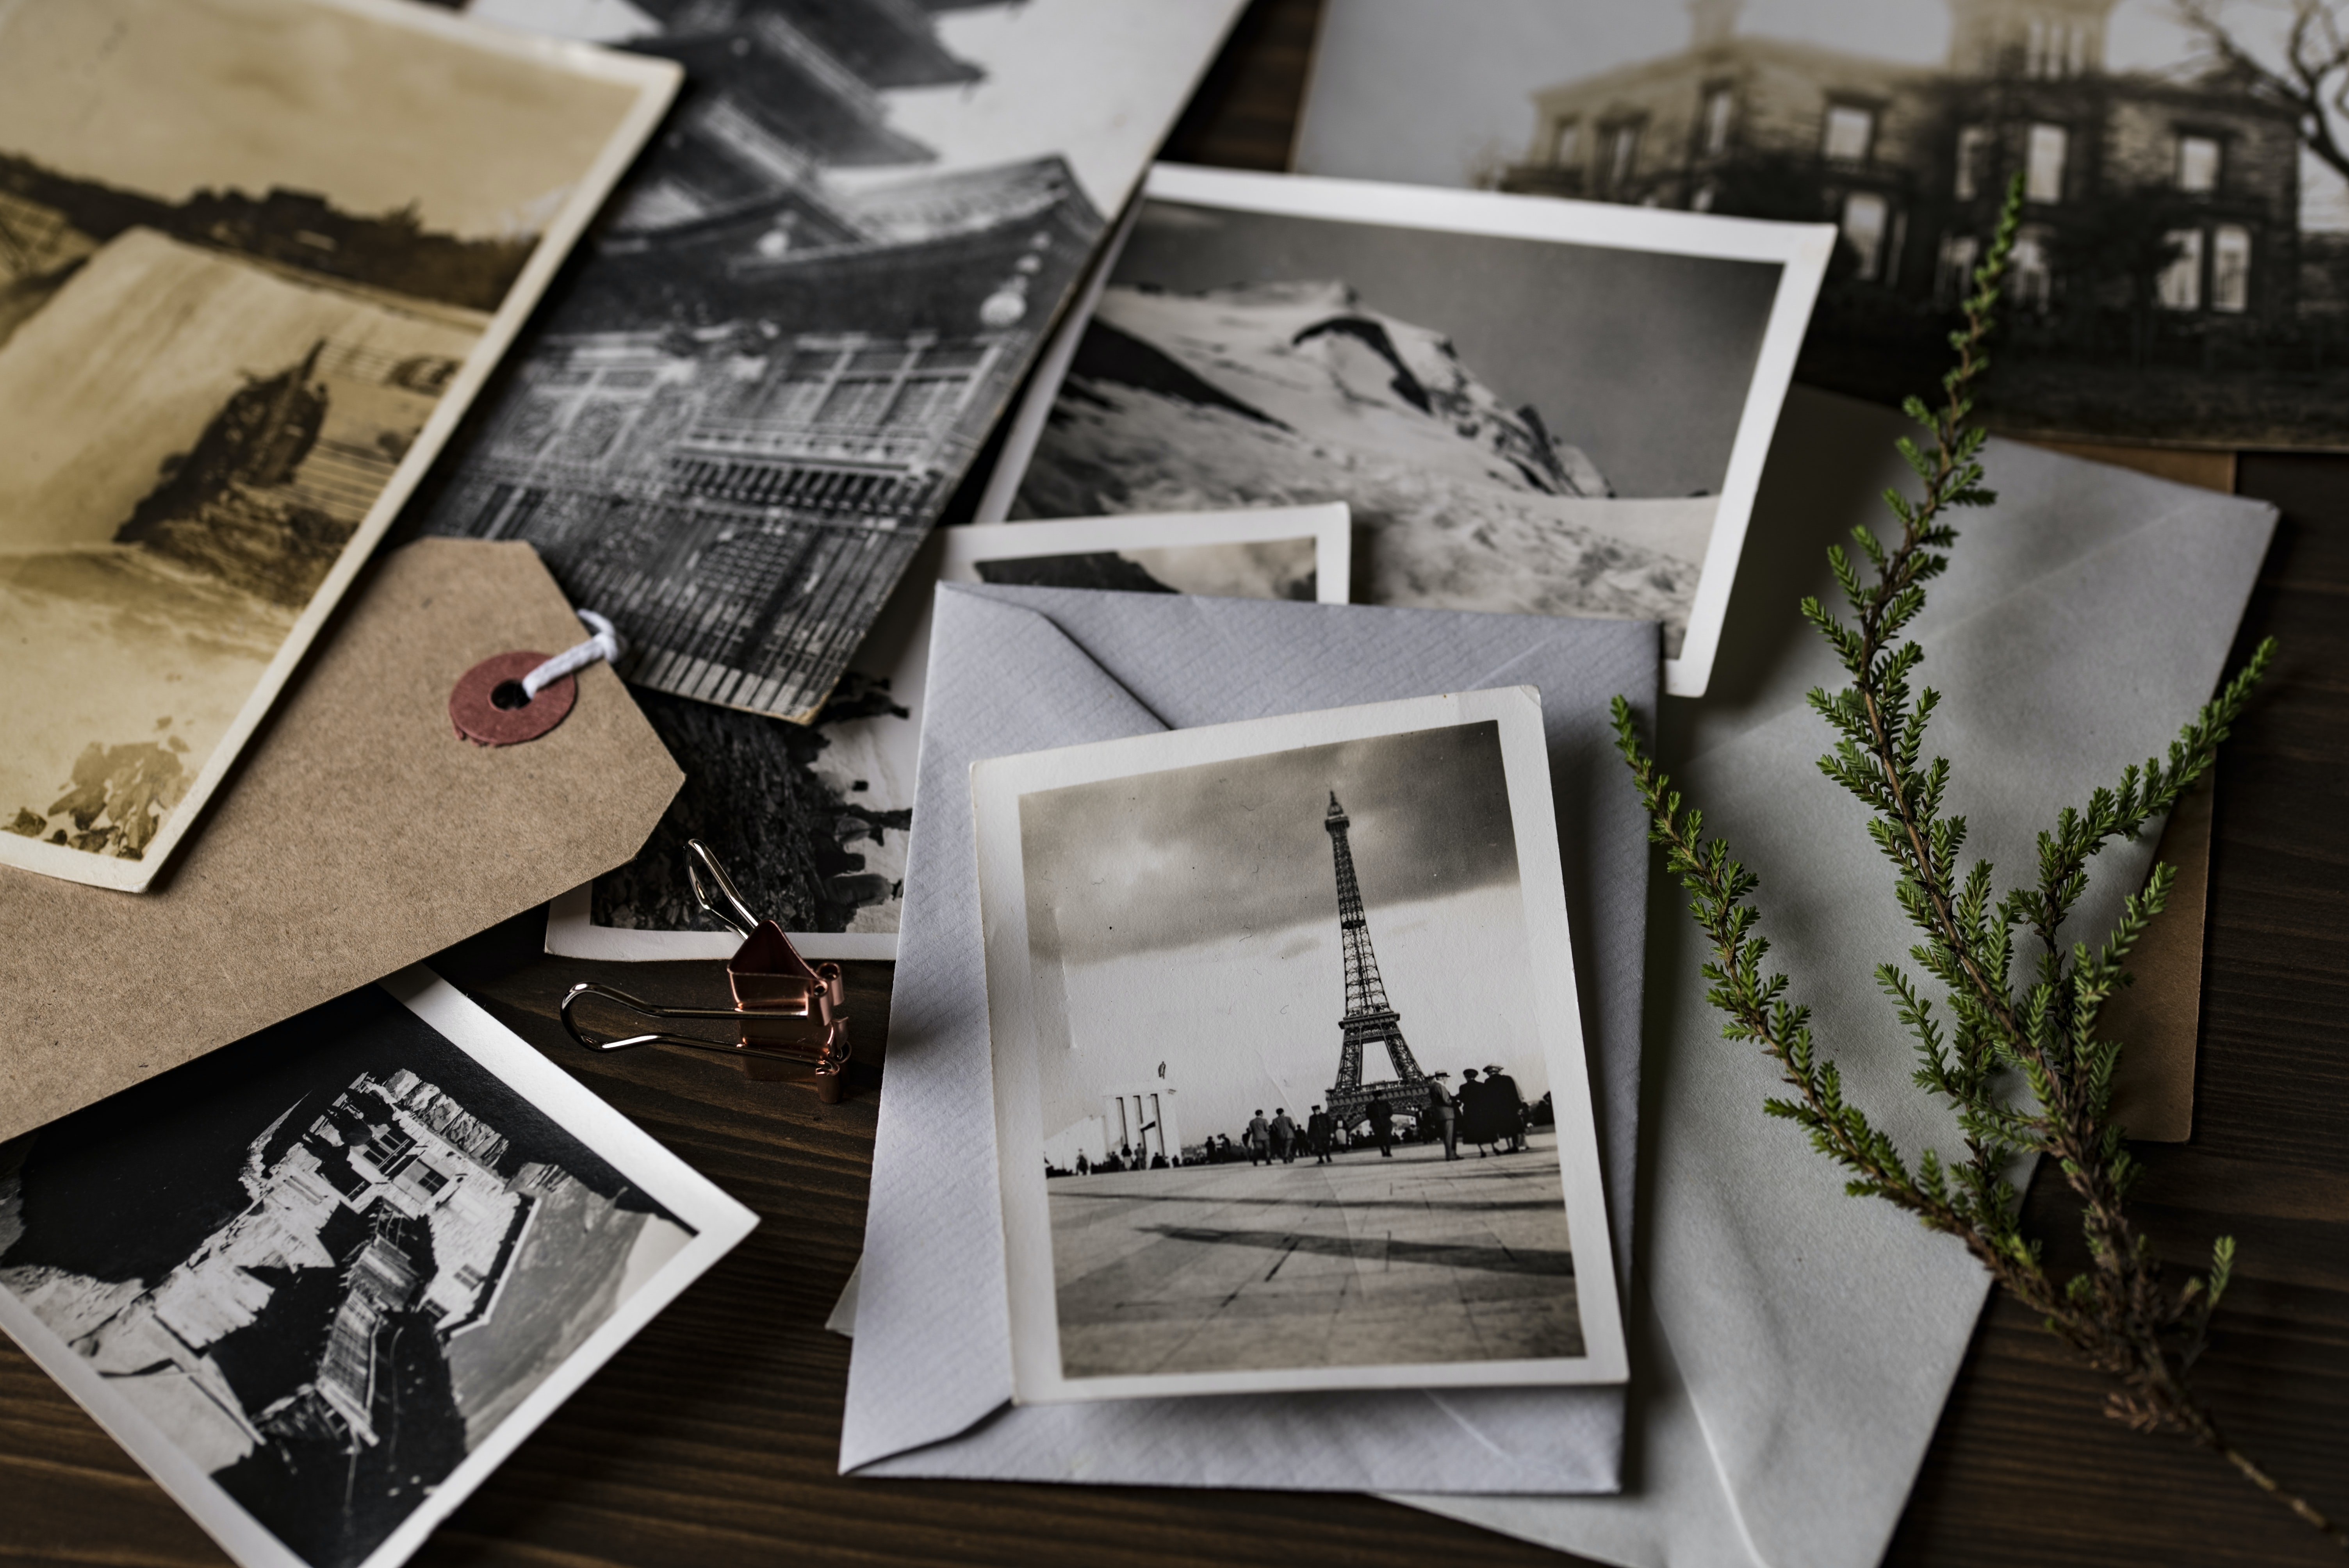 A collection of old vintage photos, postcards, and envelopes from Europe.